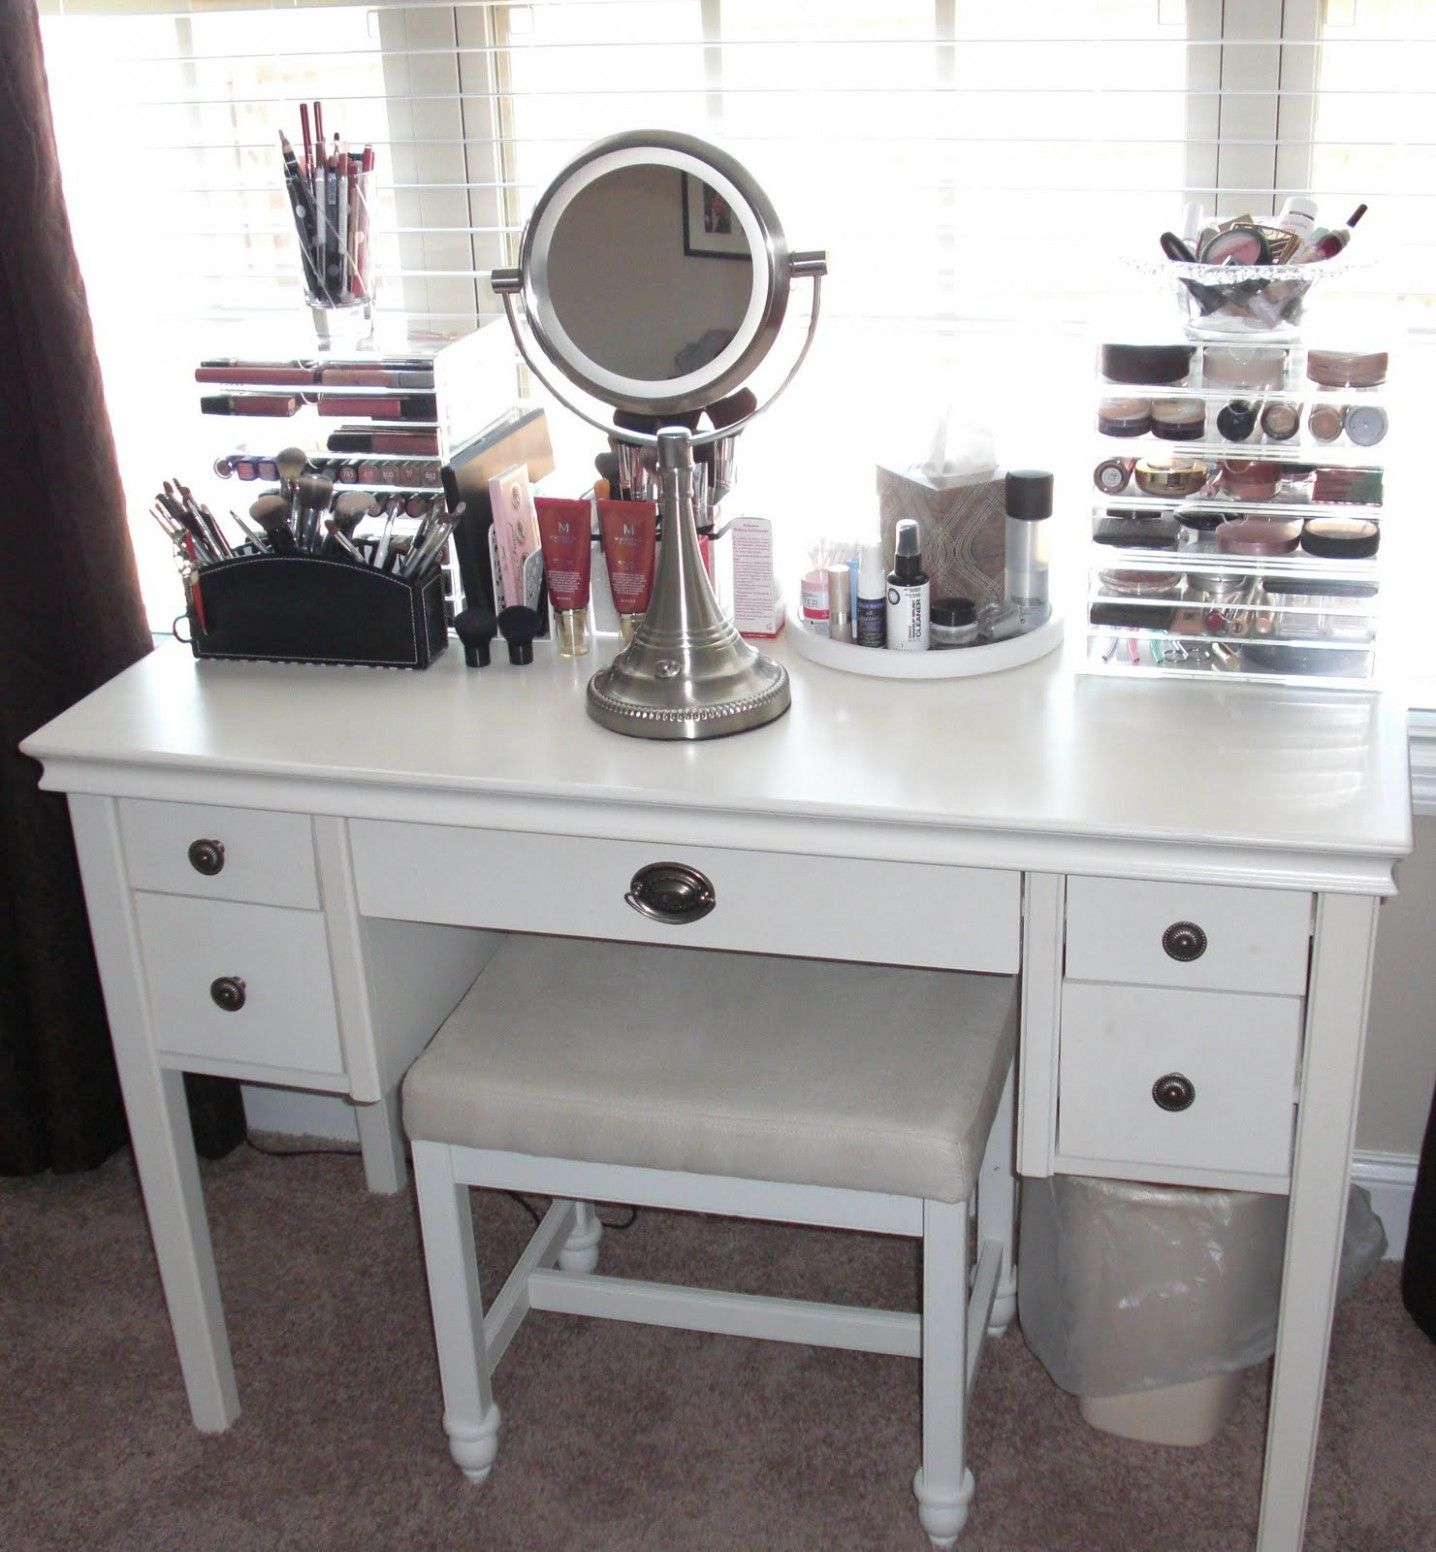 Bedroom Vanity Sets Canada In 2020 Vanity Set Up Small Bedroom Vanity Makeup Vanity Storage